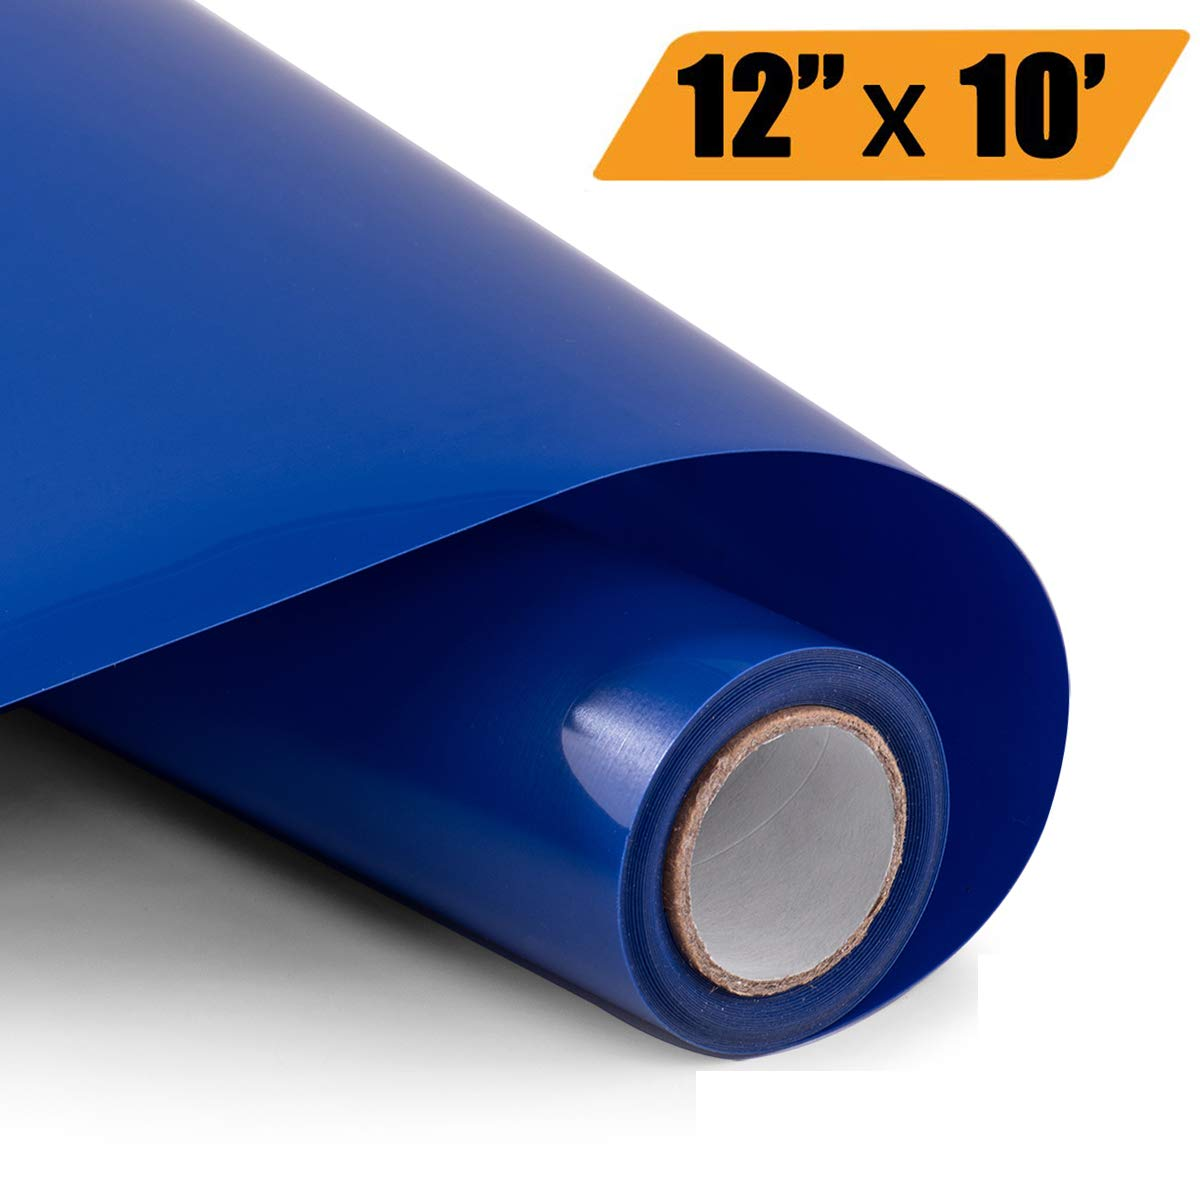 Heat Transfer Vinyl Bundle 12'' x 10' Feet Rolls, PU HTV Vinyl by Somolux for Cricut and Silhouette Cameo Easy to Cut & Weed, DIY Heat Press Design for T-Shirt, Clothes, Hats and Other Textiles (Blue) by HoneyTolly